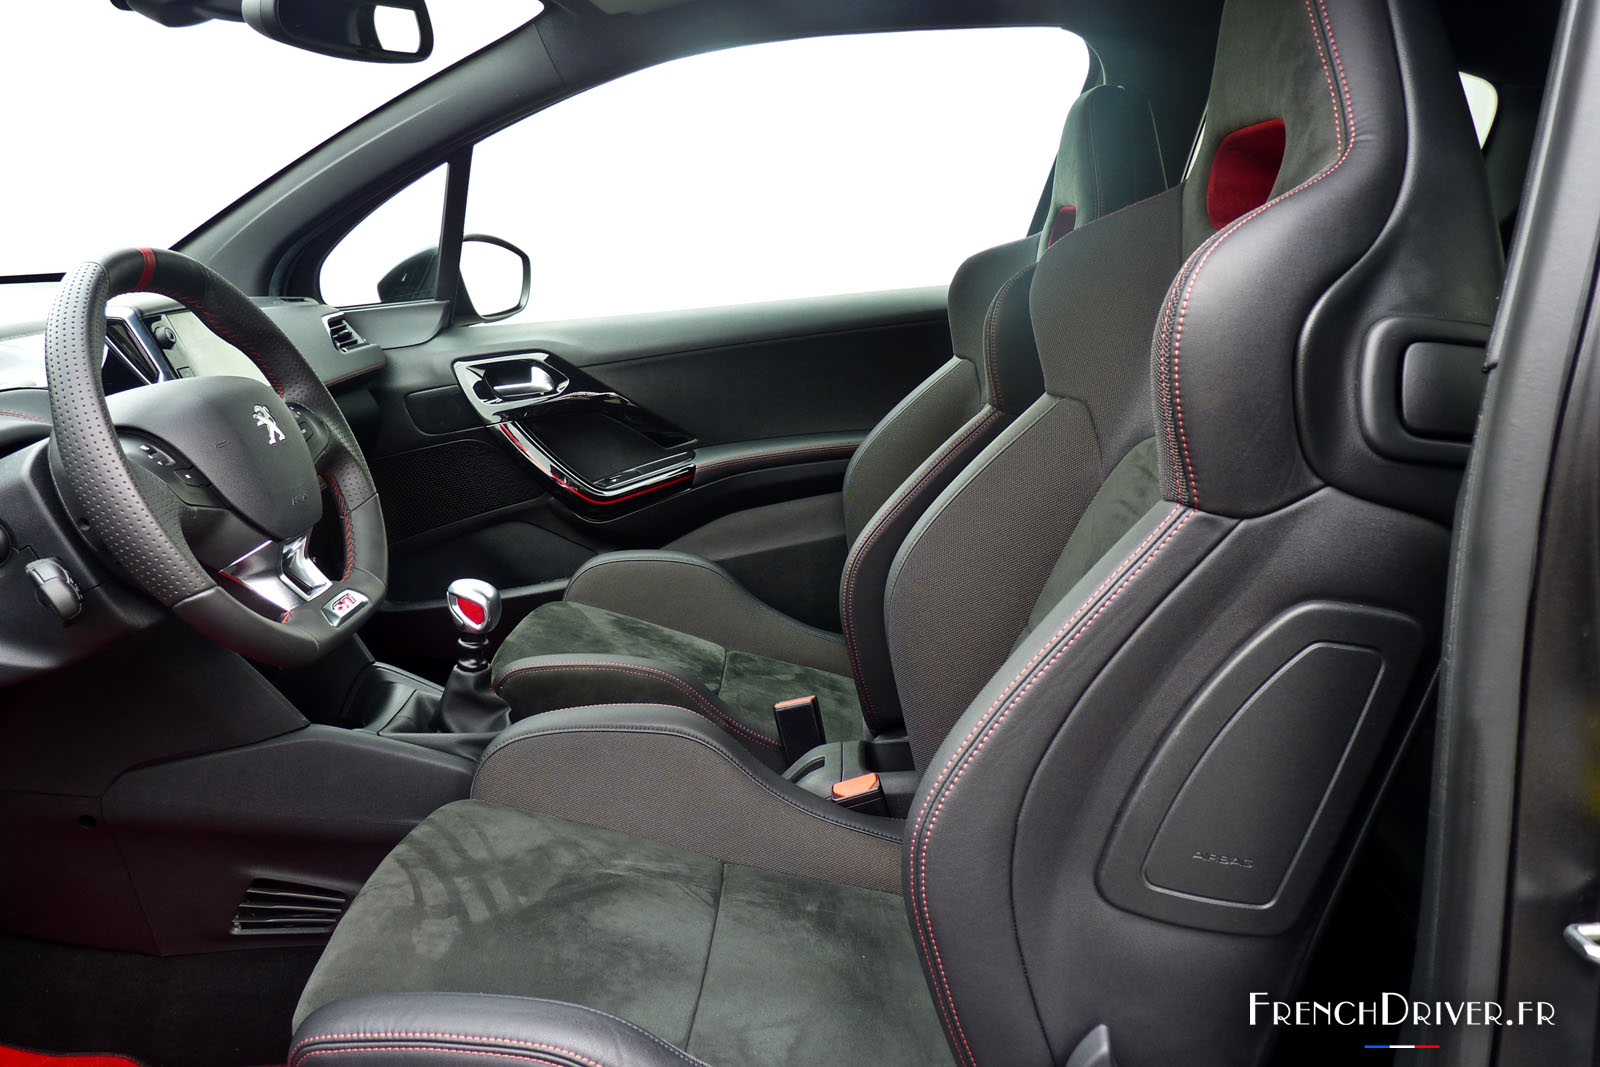 Essai de la peugeot 208 gti 30th l 39 exemple suivre for Interieur sport